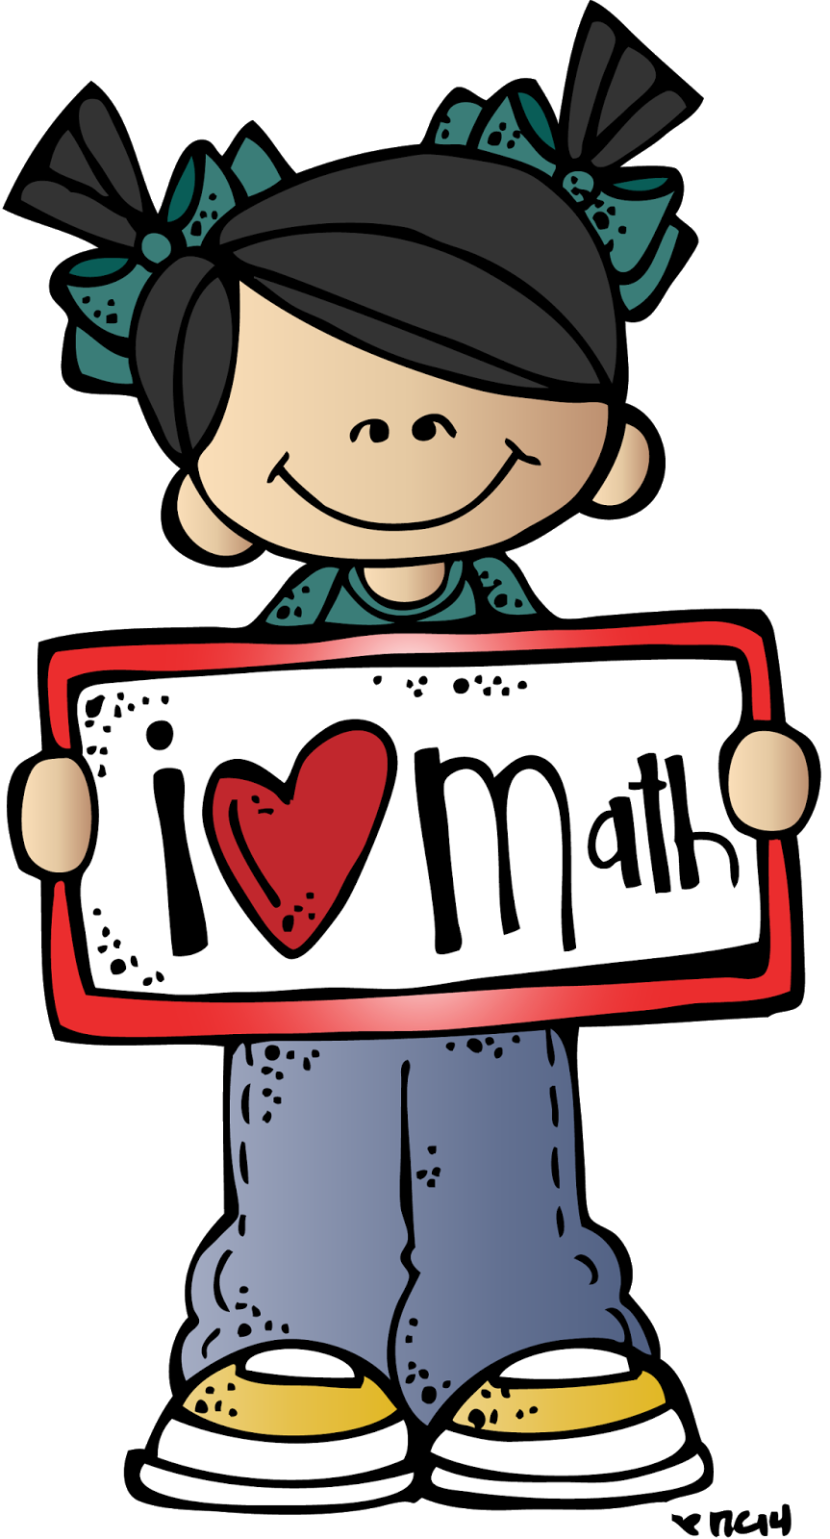 Multiplication clipart cartoon character. Sunday football clip art